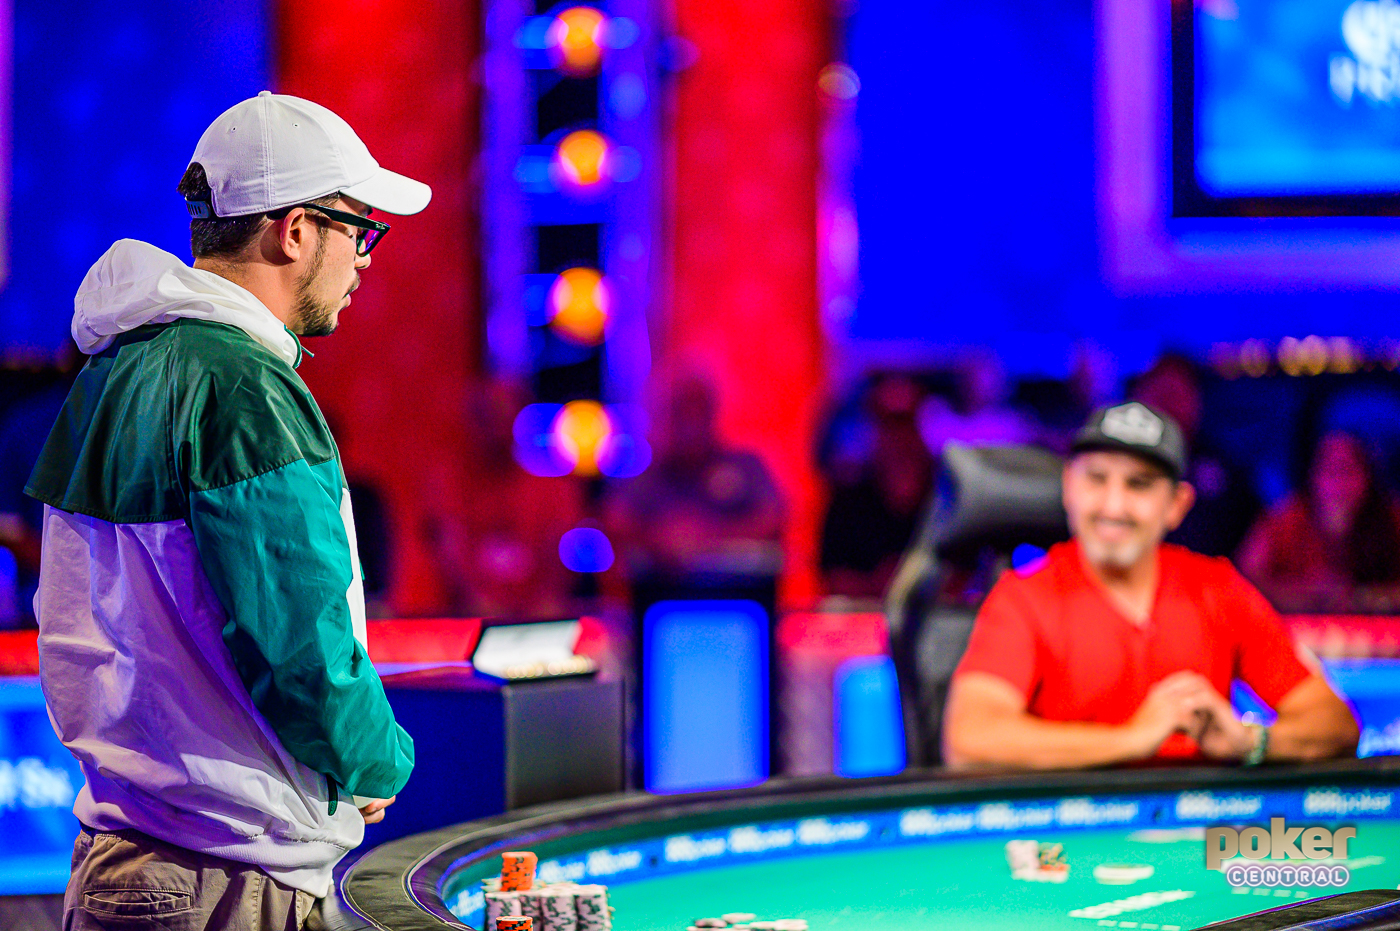 The adrenaline reaches new heights for Phil Hui as Josh Arieh's all-in for his tournament life.